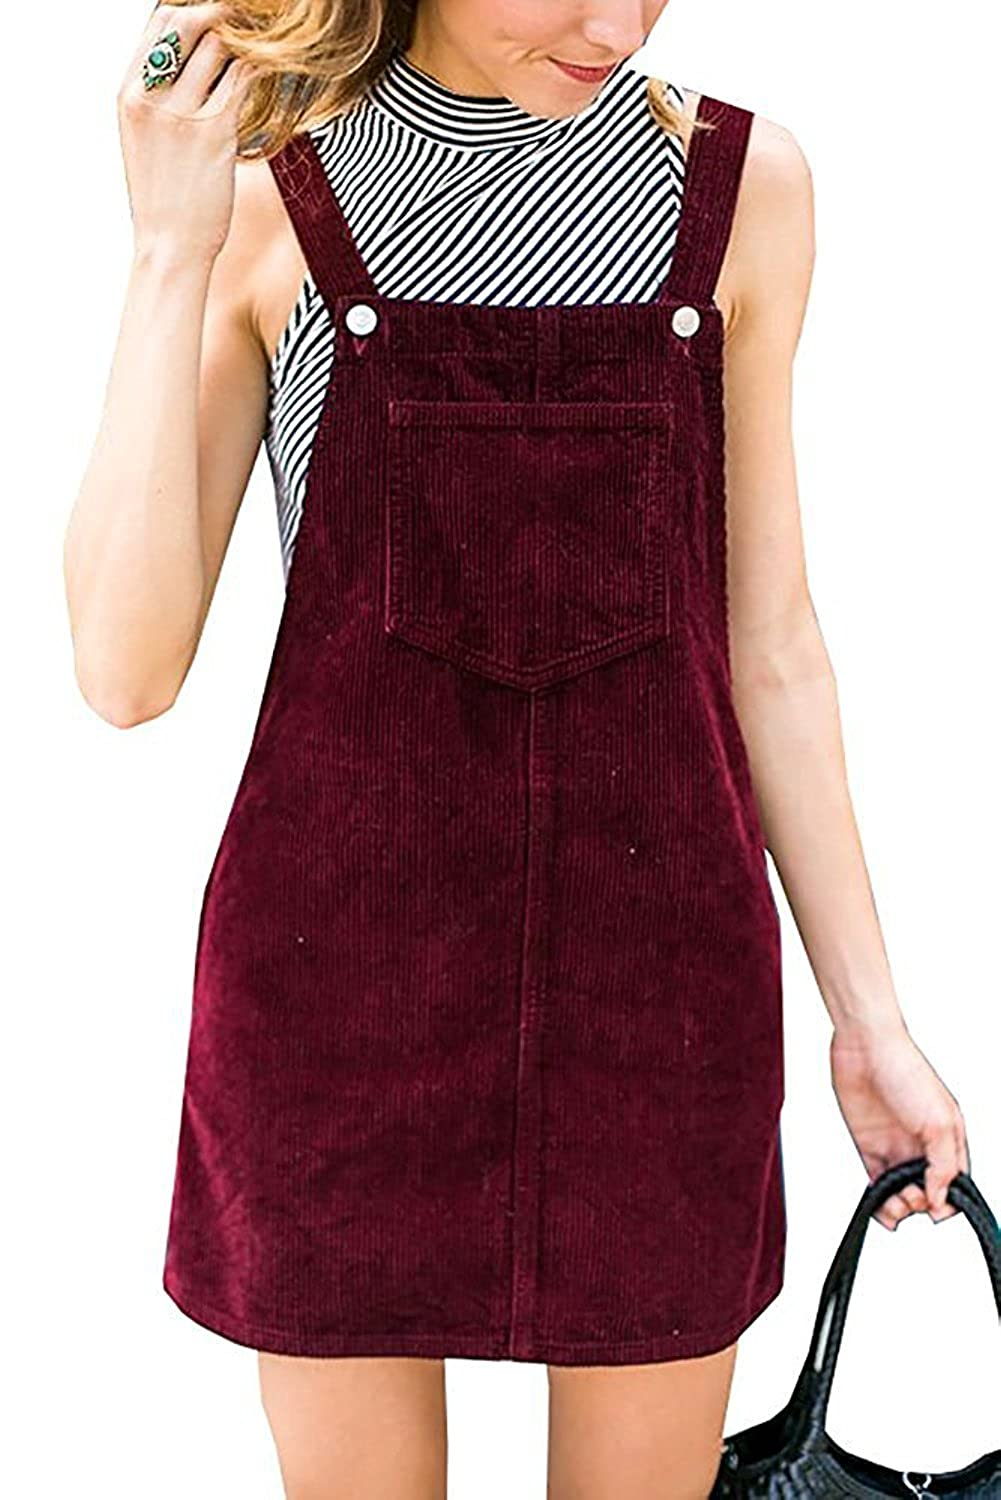 278f372a3f Amazon.com  Annystore Womens Corduroy Suspender Skirt Mini Bib Overall  Pinafore Dress with Pocket  Clothing